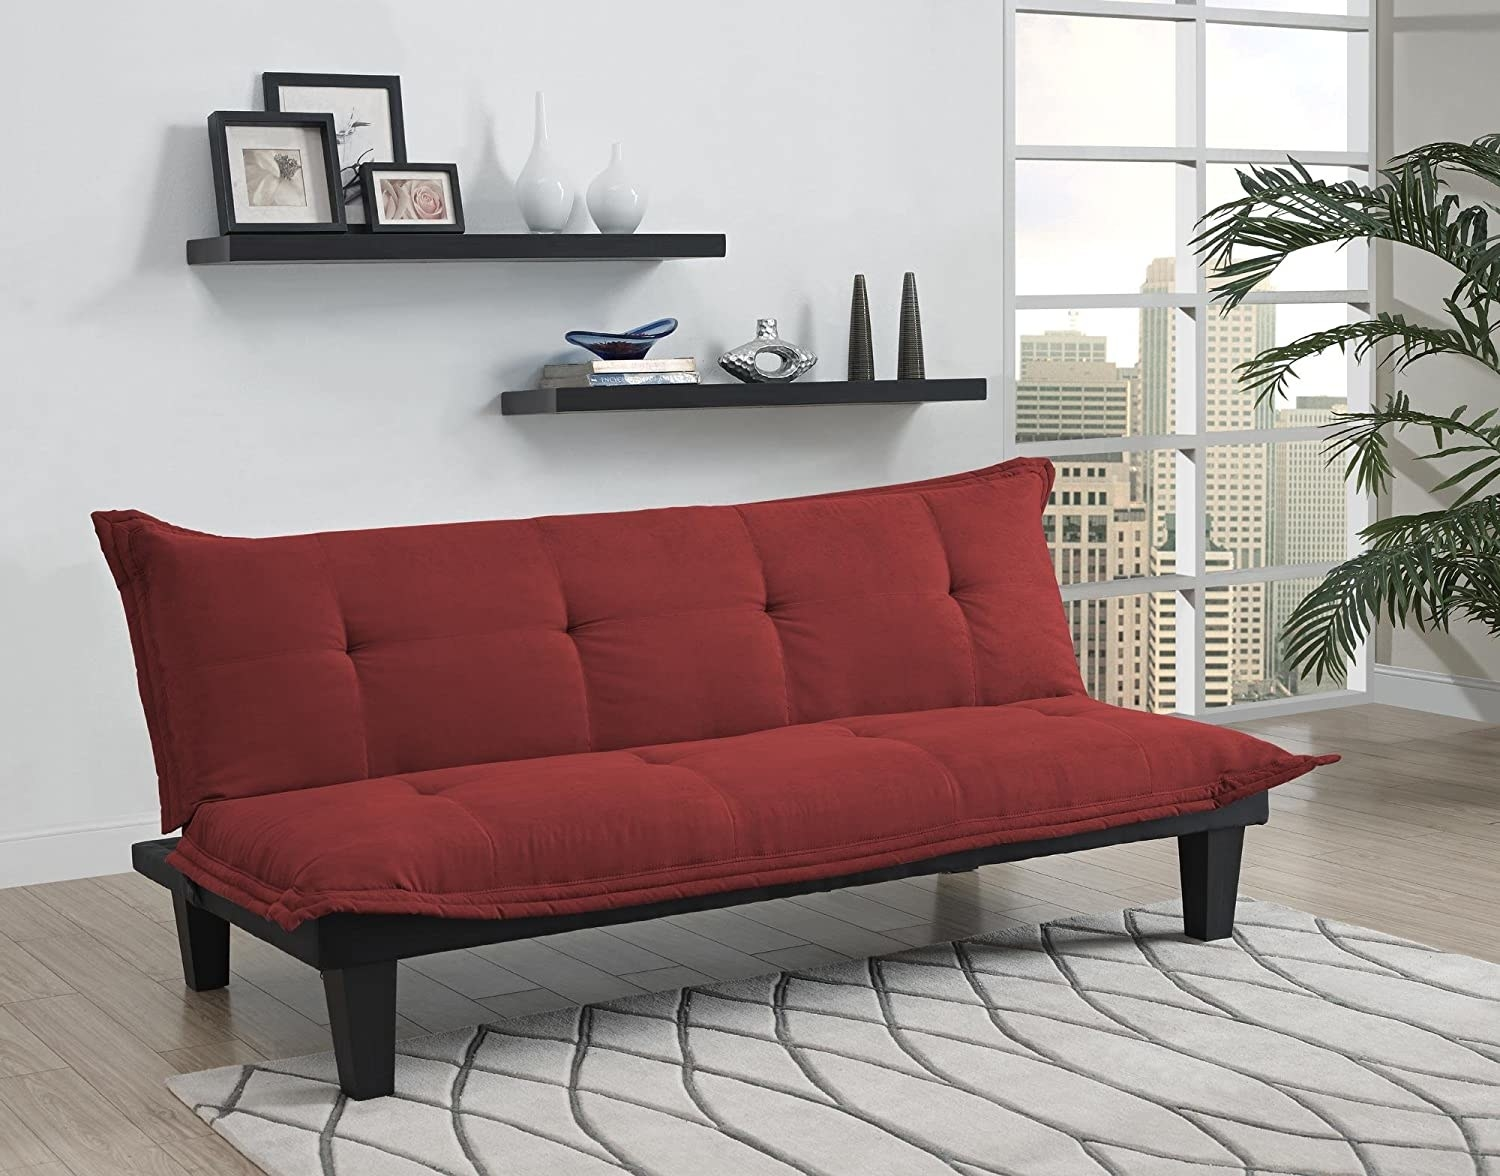 a red futon with a tufted back and seat